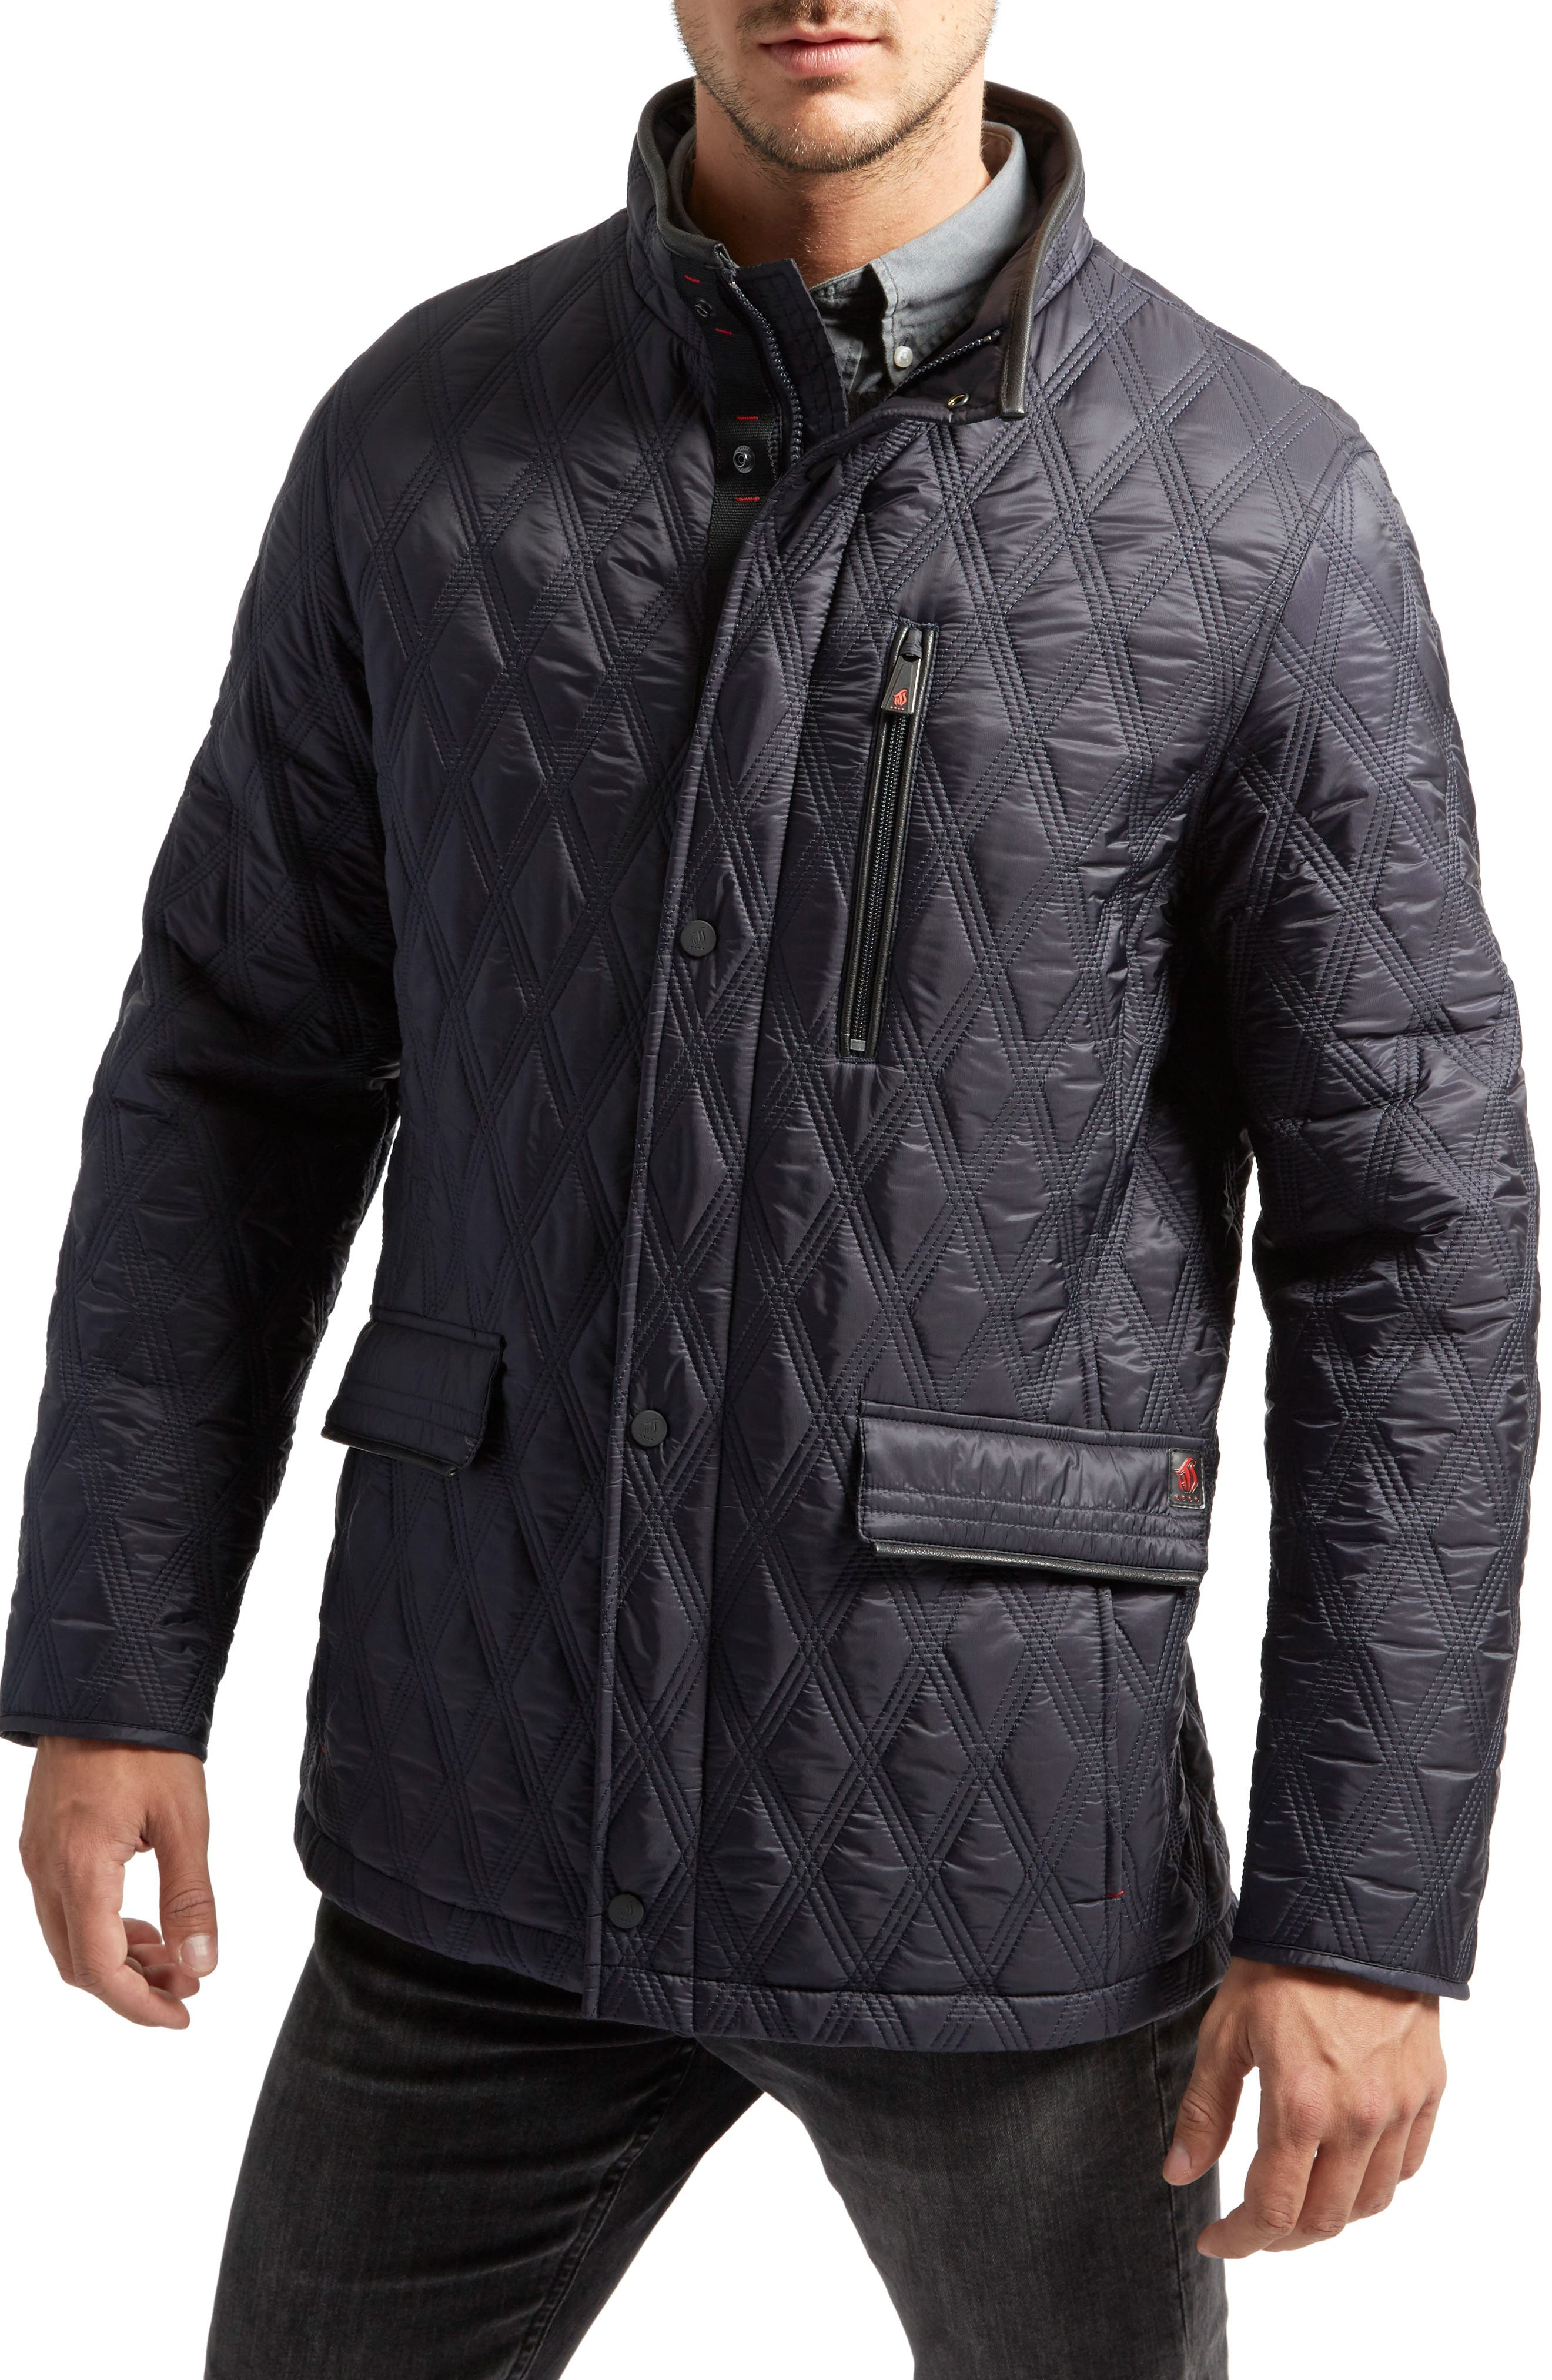 Alternate Image 1 Selected - ThermoLUXE® Prichard Triple Stitch Quilted Heat System Jacket